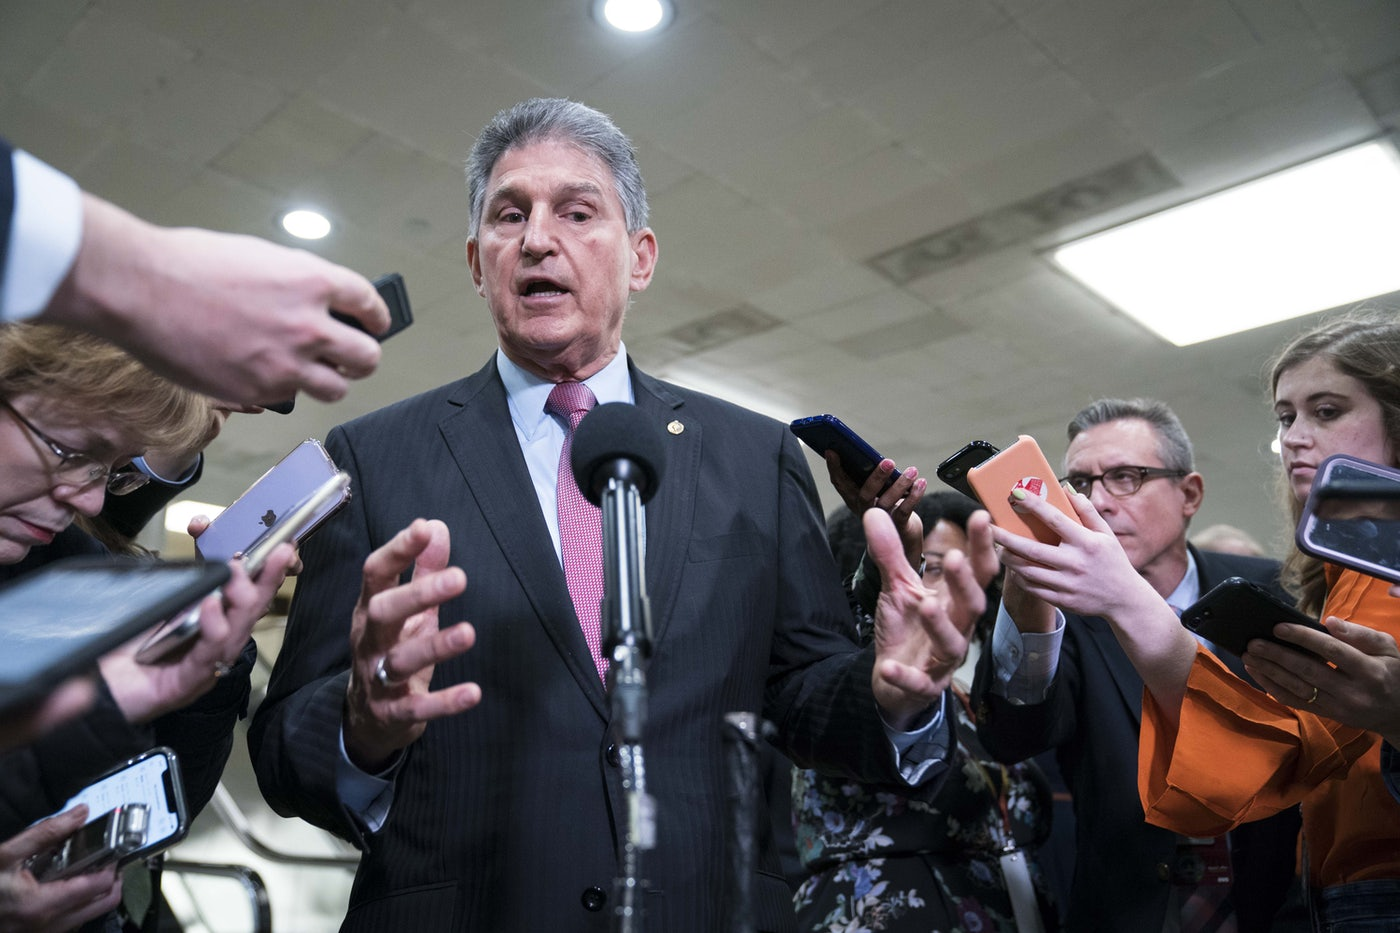 West Virginia Senator Joe Manchin speaks to reporters at the U.S. Capitol